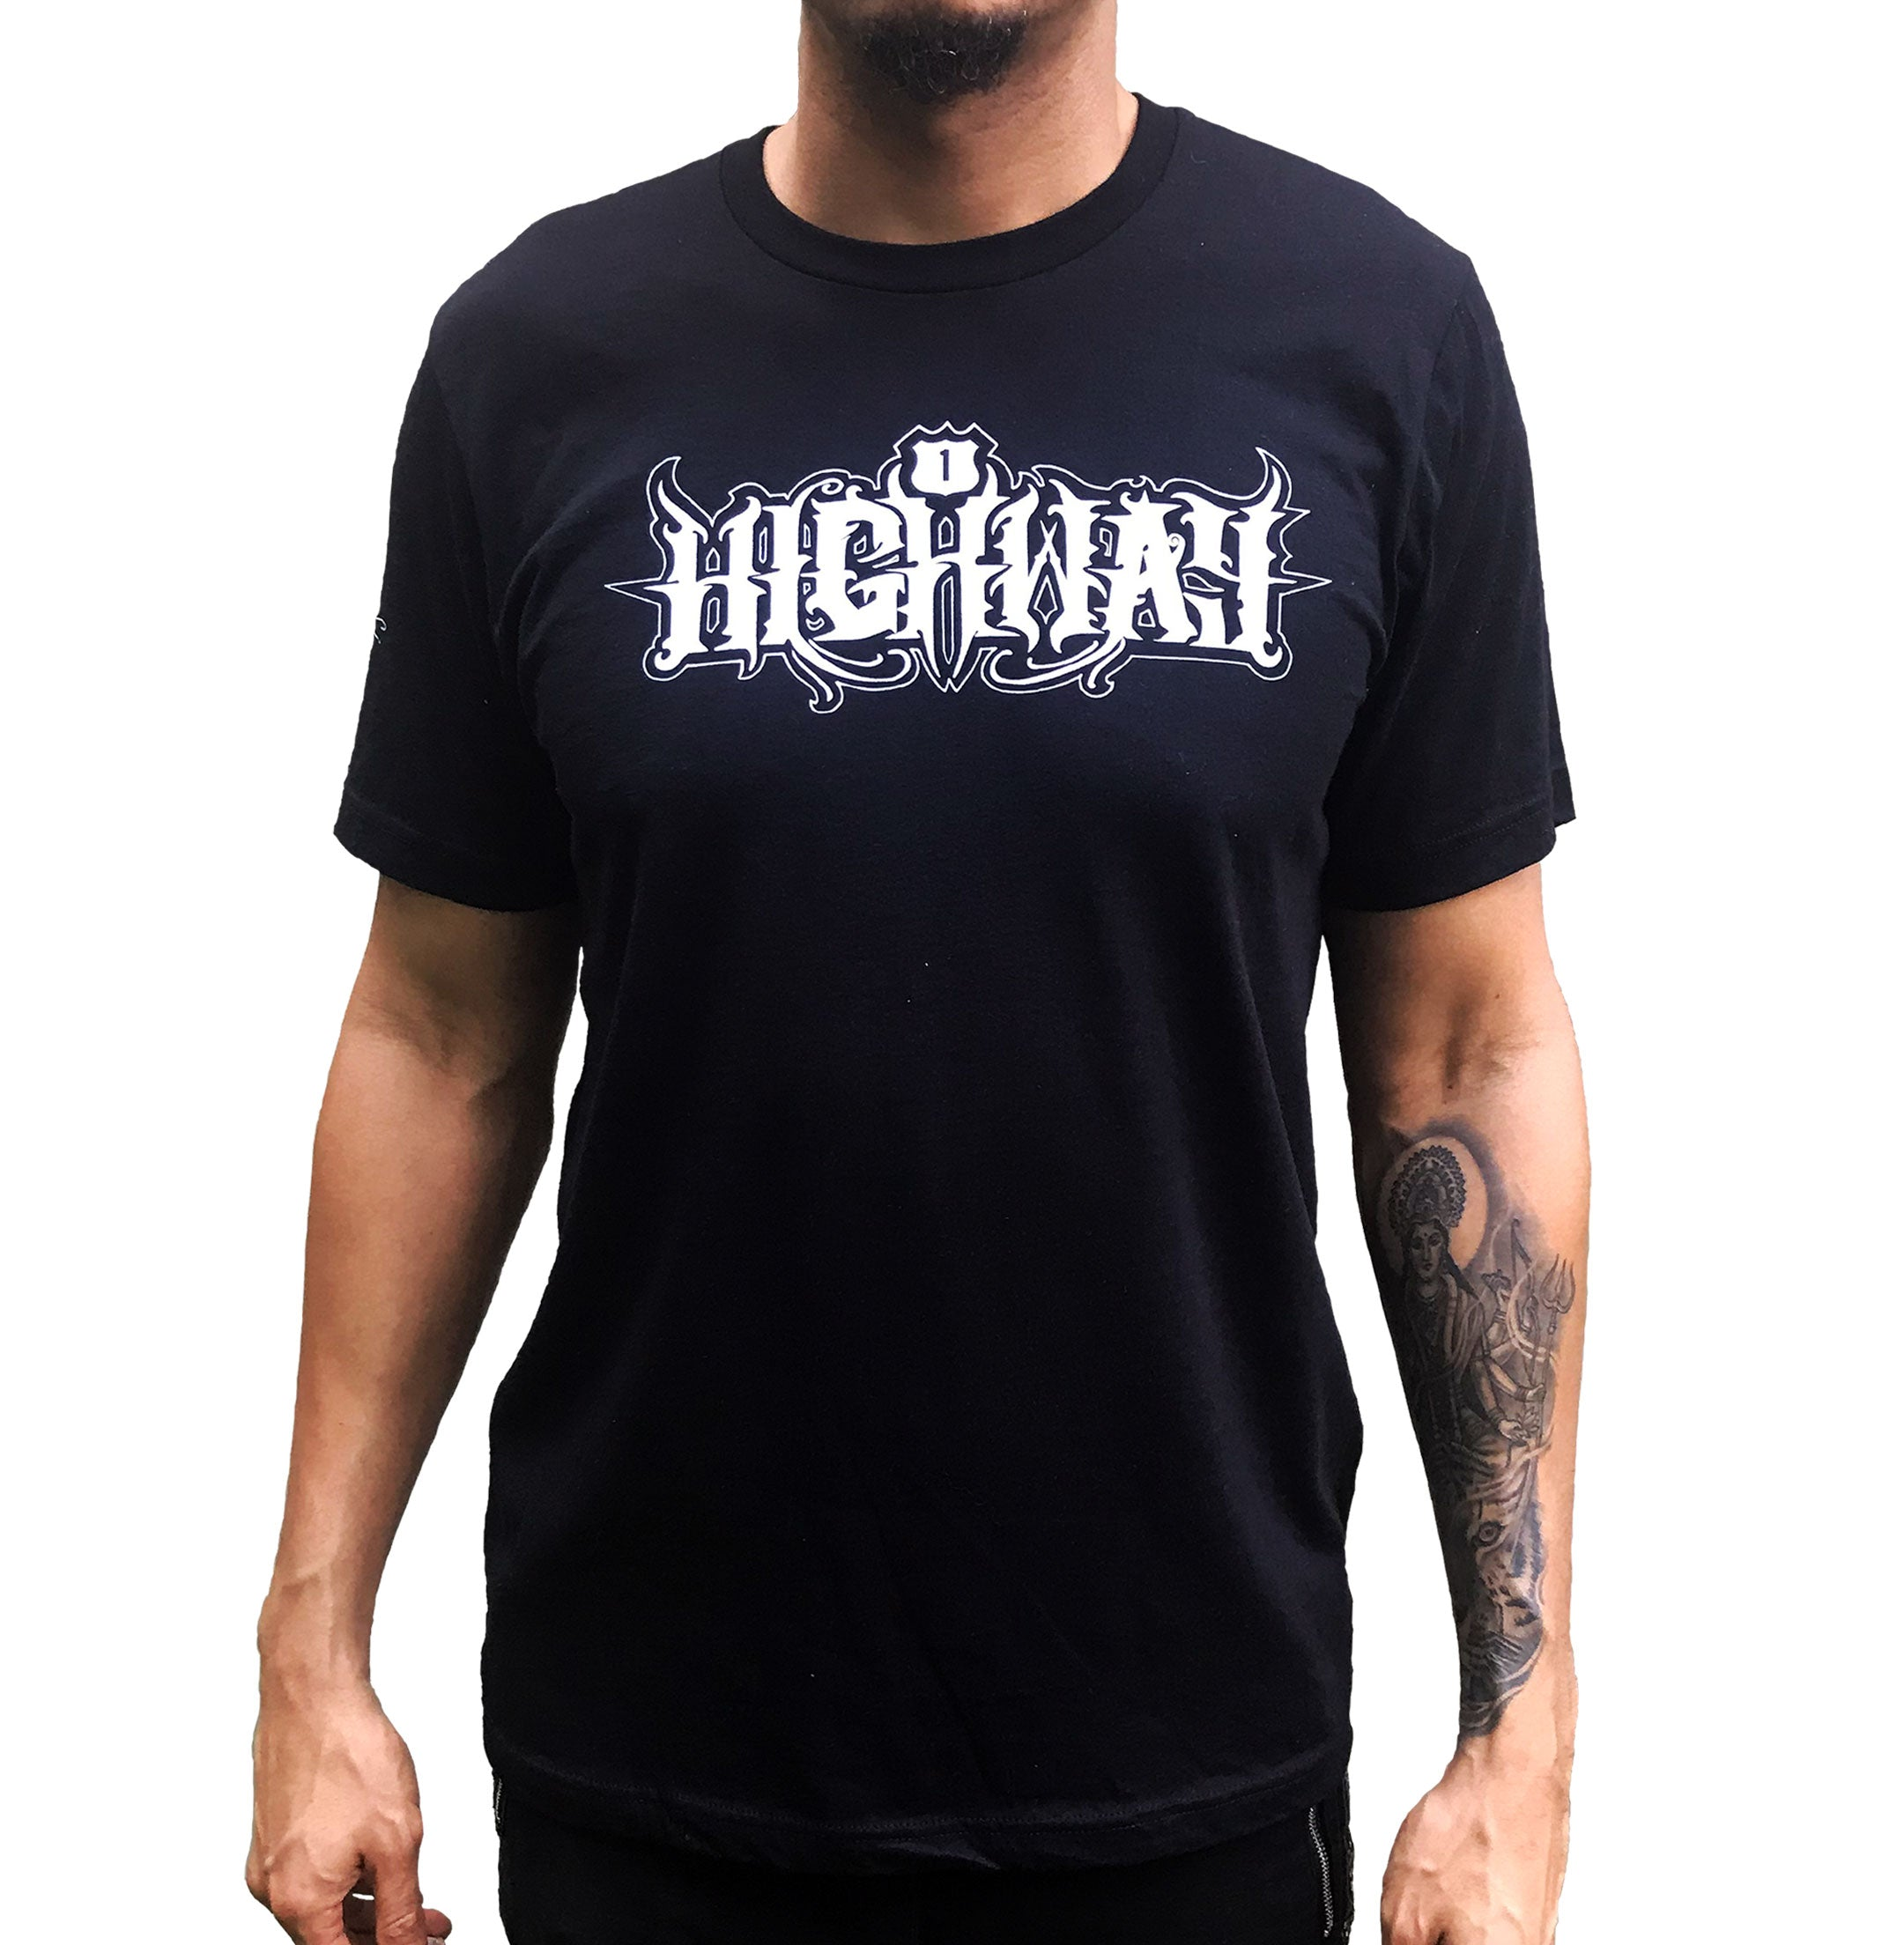 """Highway"" Short-Sleeve Unisex T-Shirt"